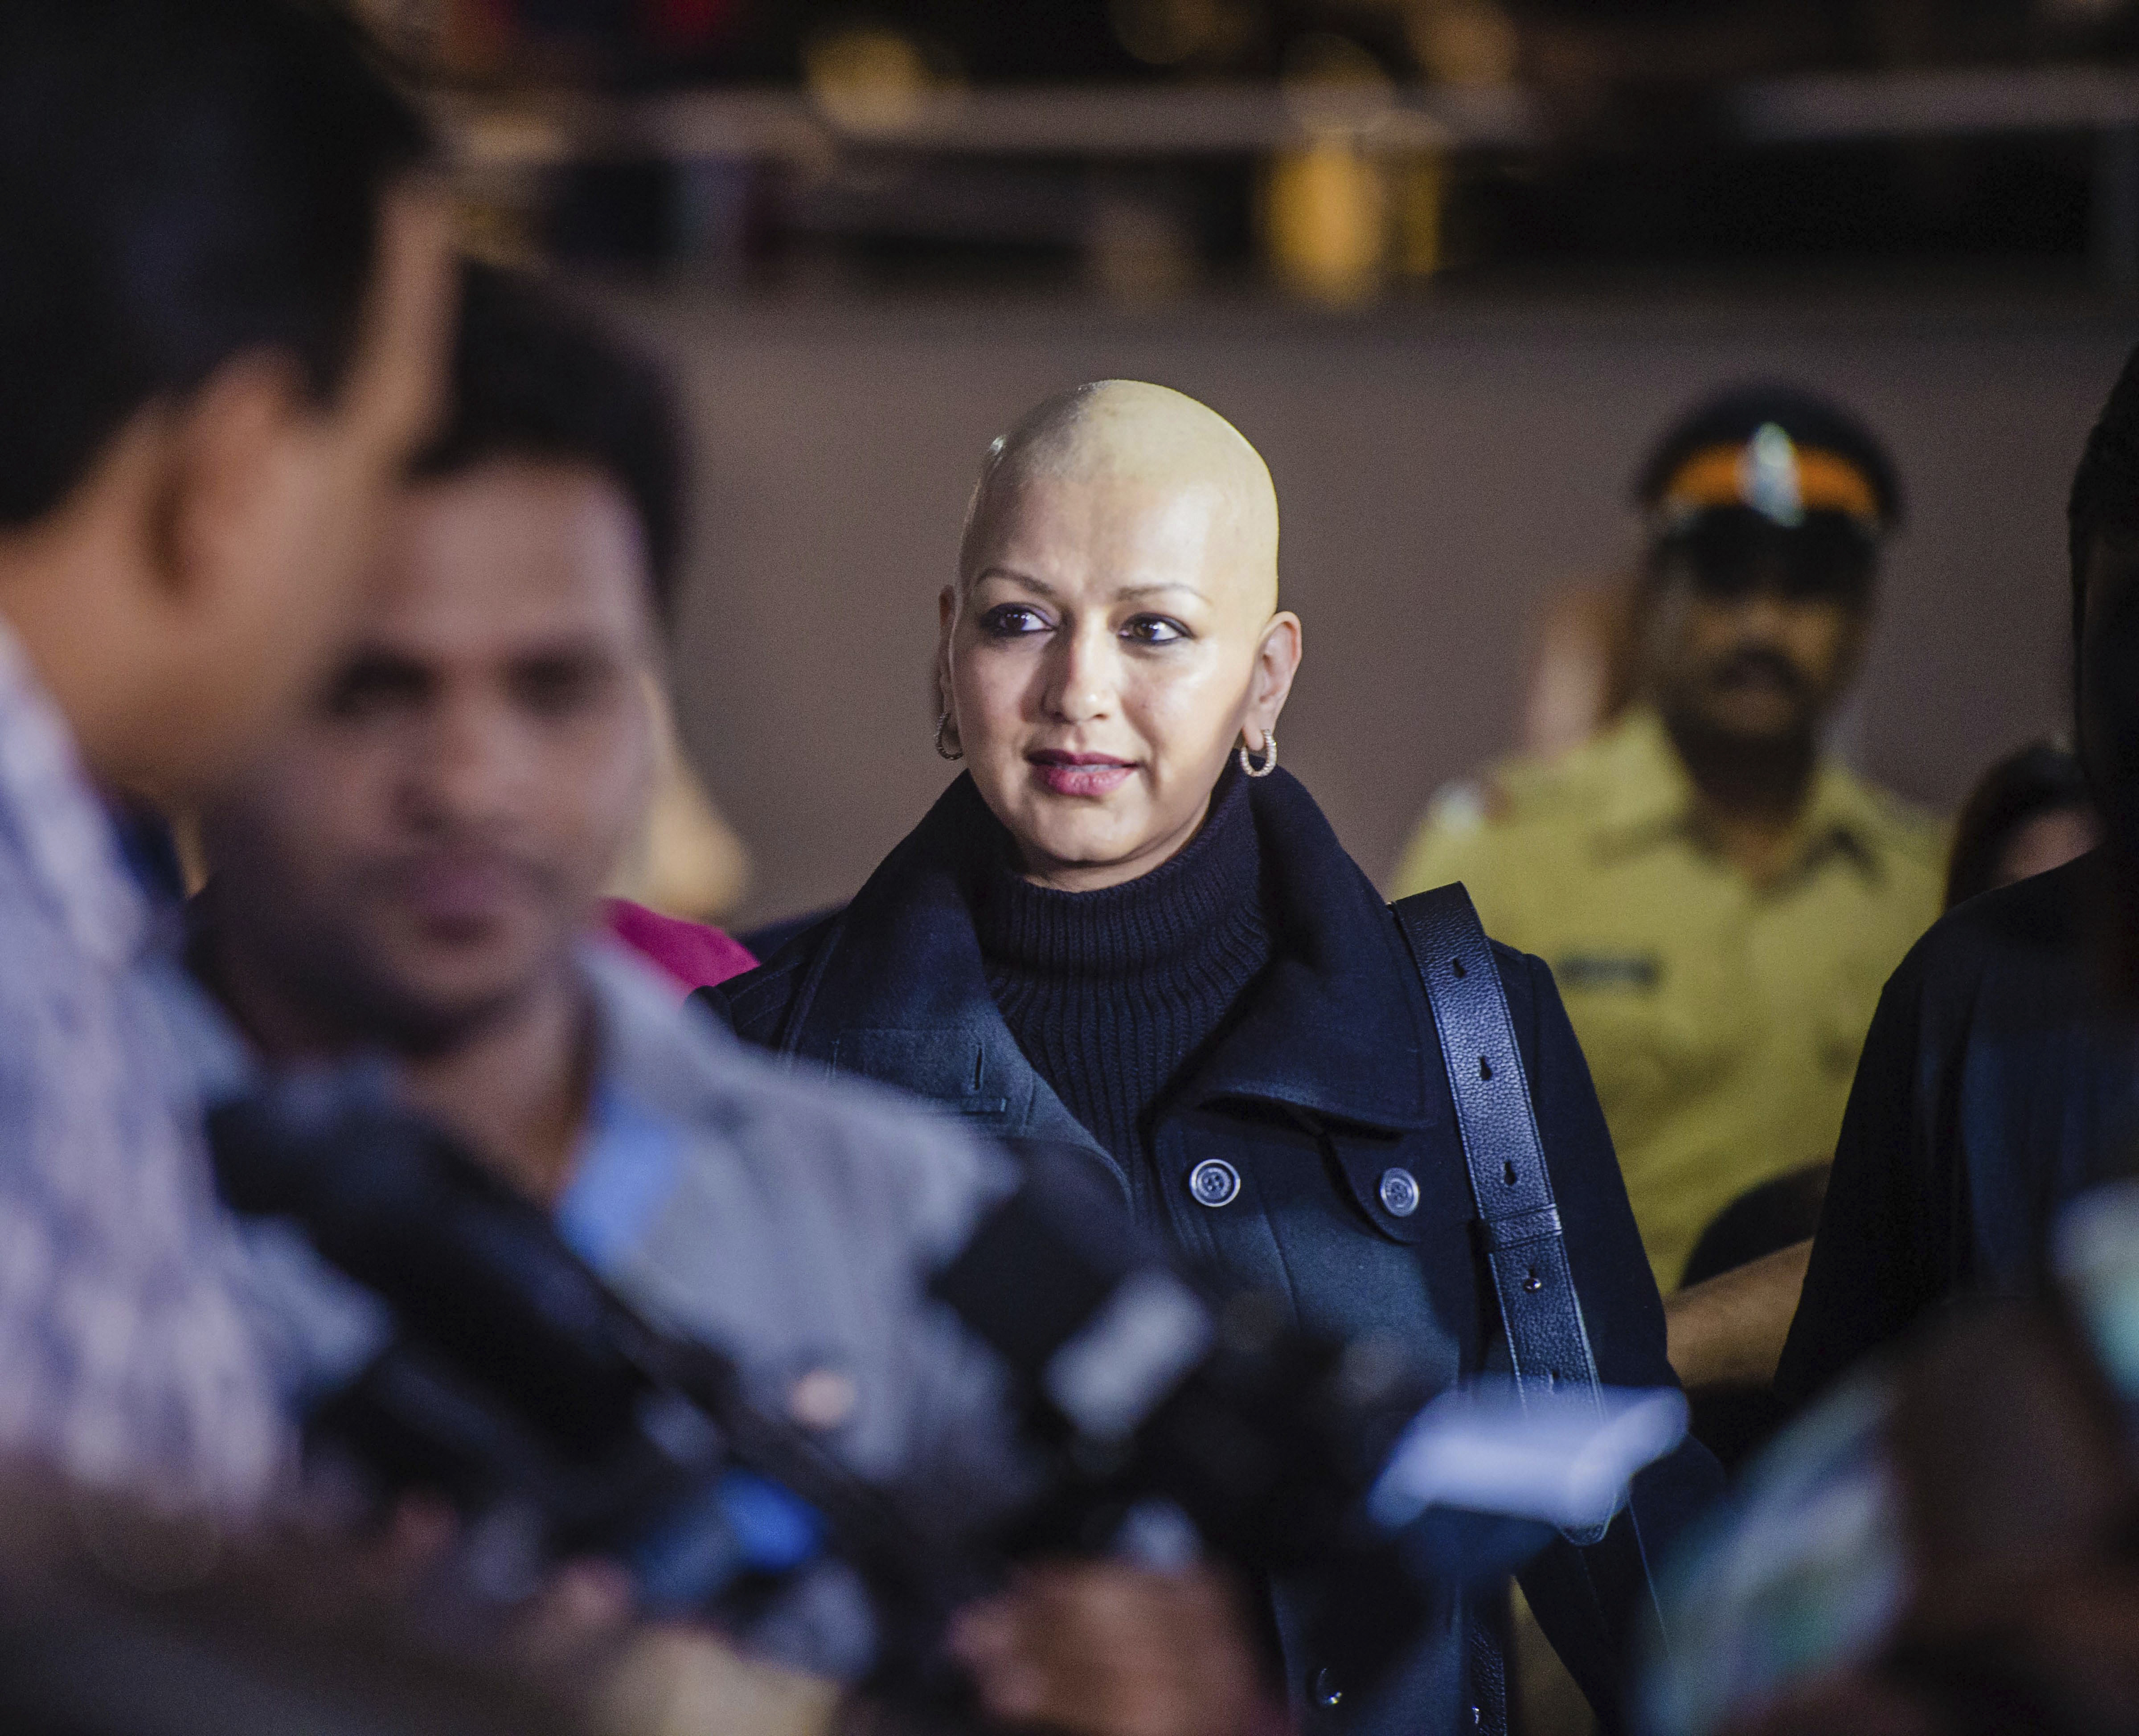 Actress Sonali Bendre on arrival in Mumbai - PTI